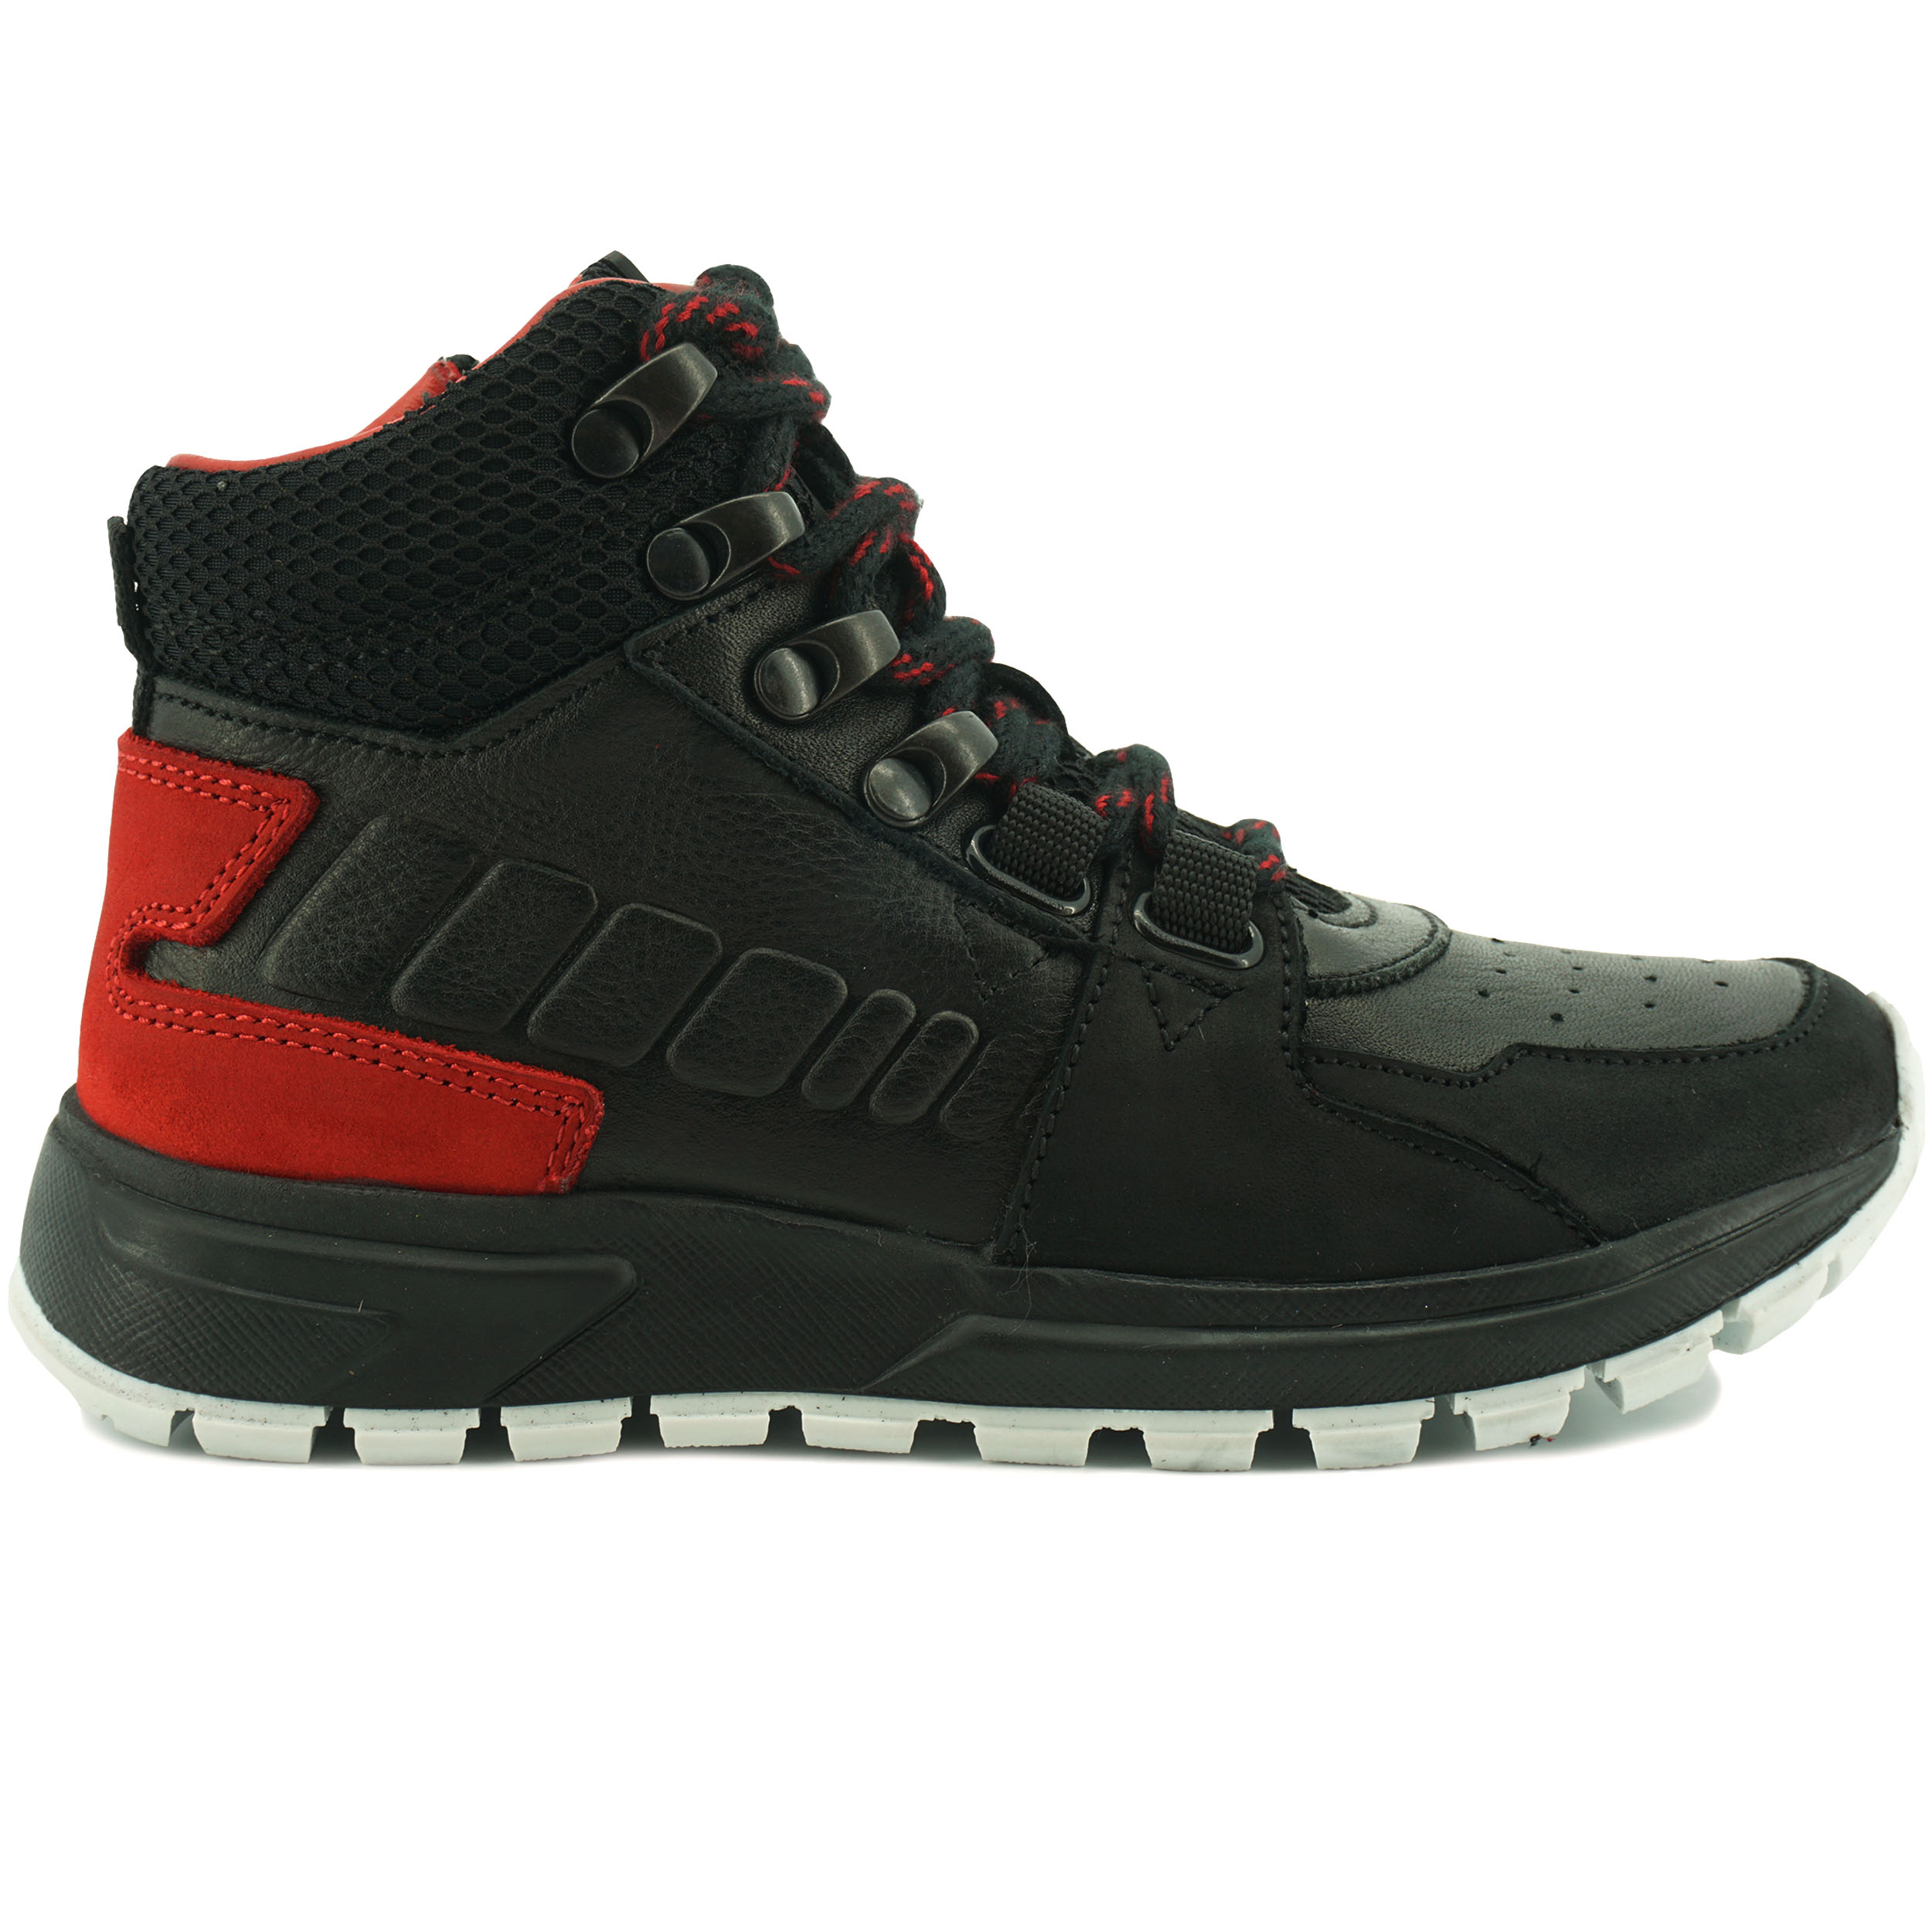 Trackstyle Boot 321868 Black/Red 5